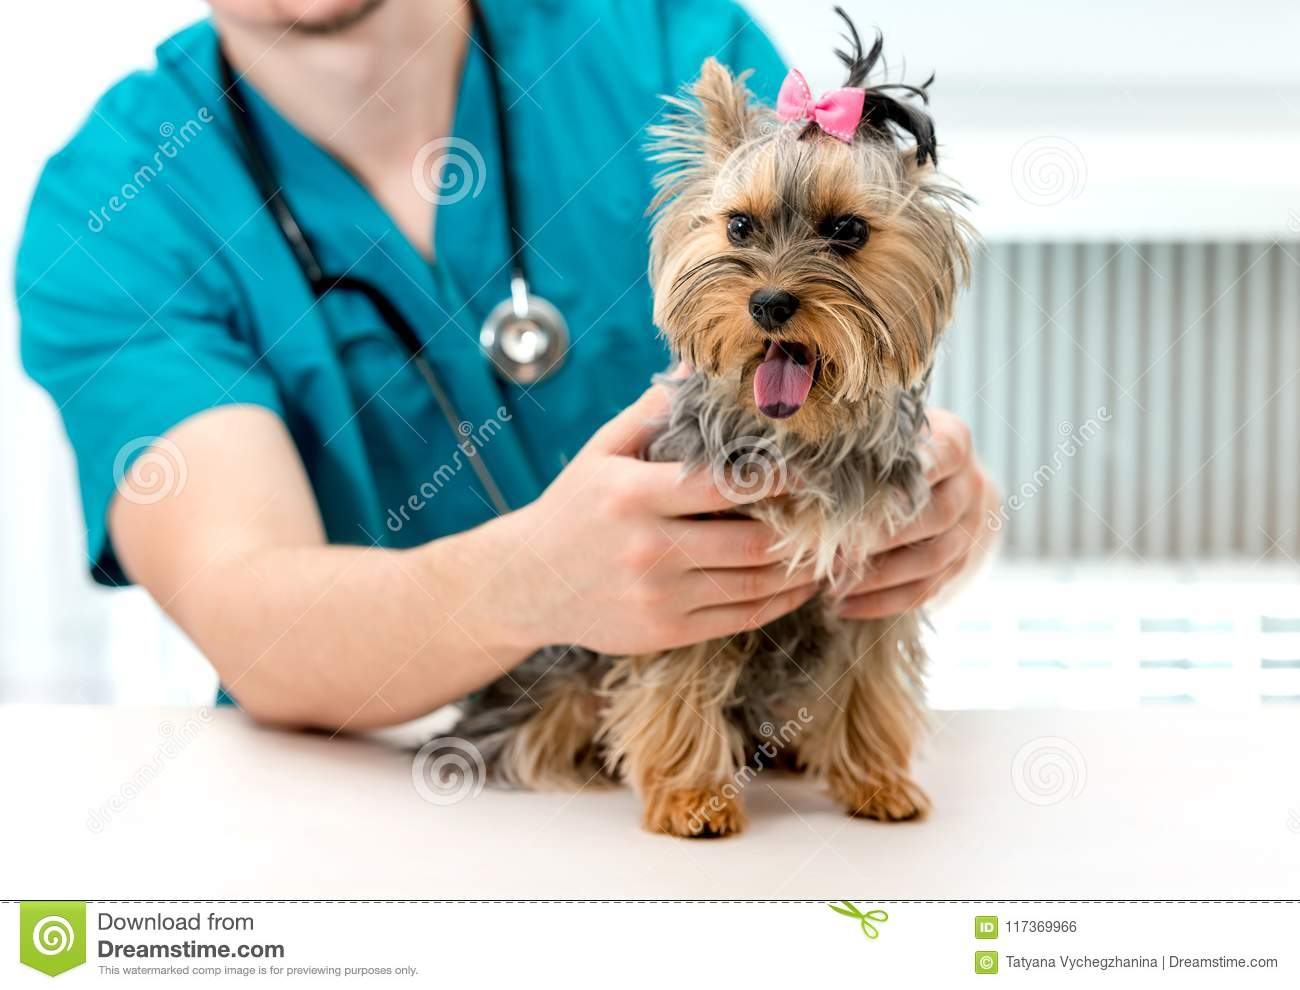 Veterinarian hands holding Yorkshire Terrier dog on examination table